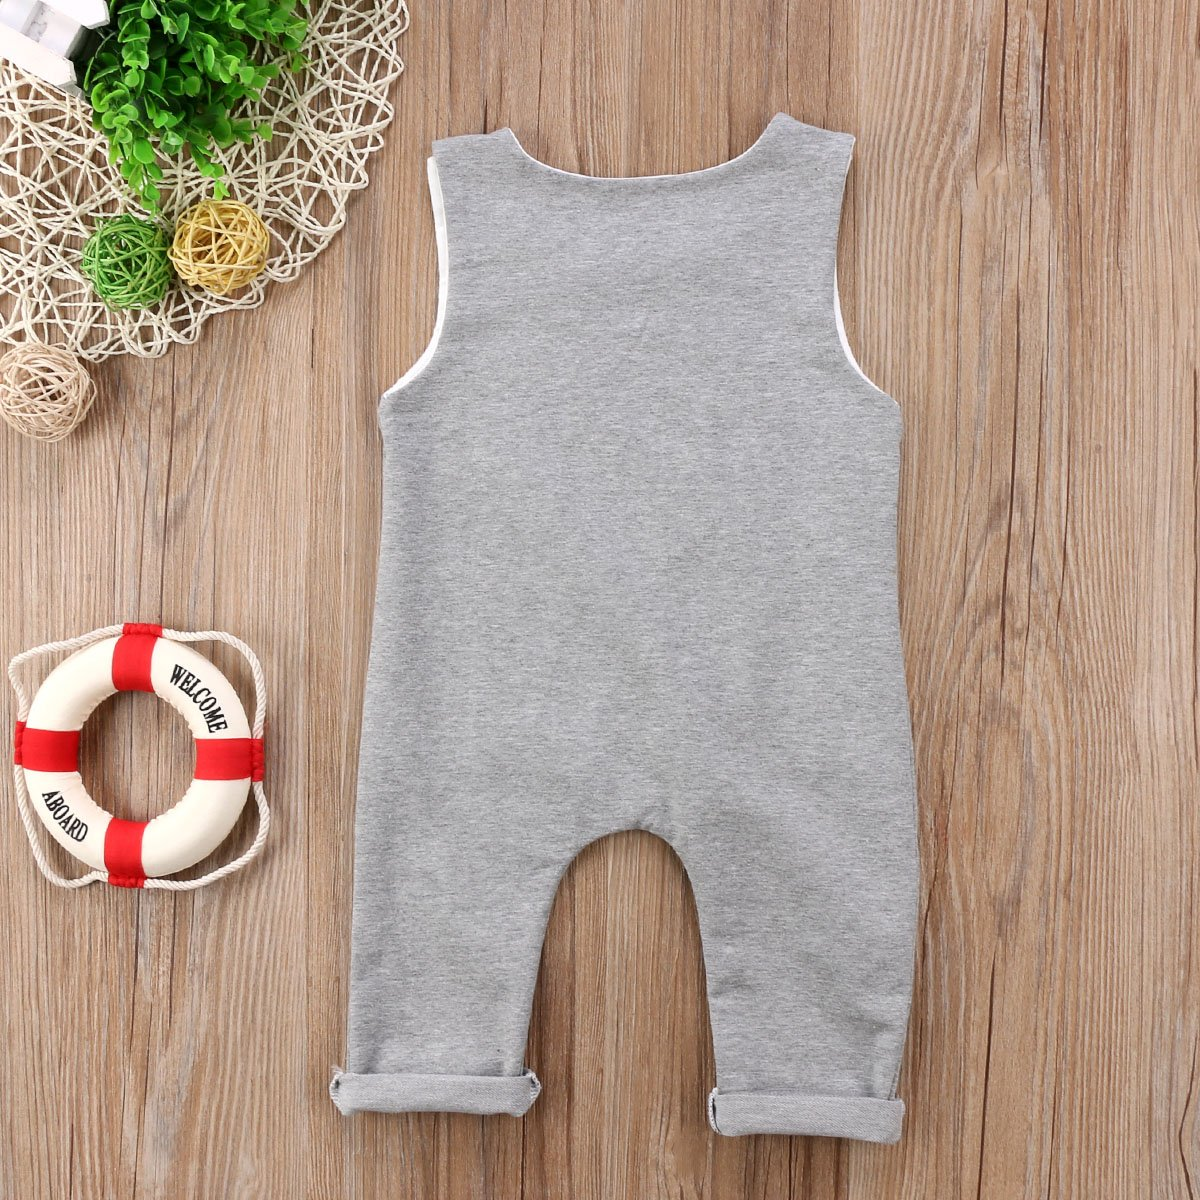 48494fc4e Amazon.com: Newborn Infant Baby Boys Sleeveless Harem Romper Jumpsuit  Outfits Overall Clothes One-Piece Bodysuit: Clothing